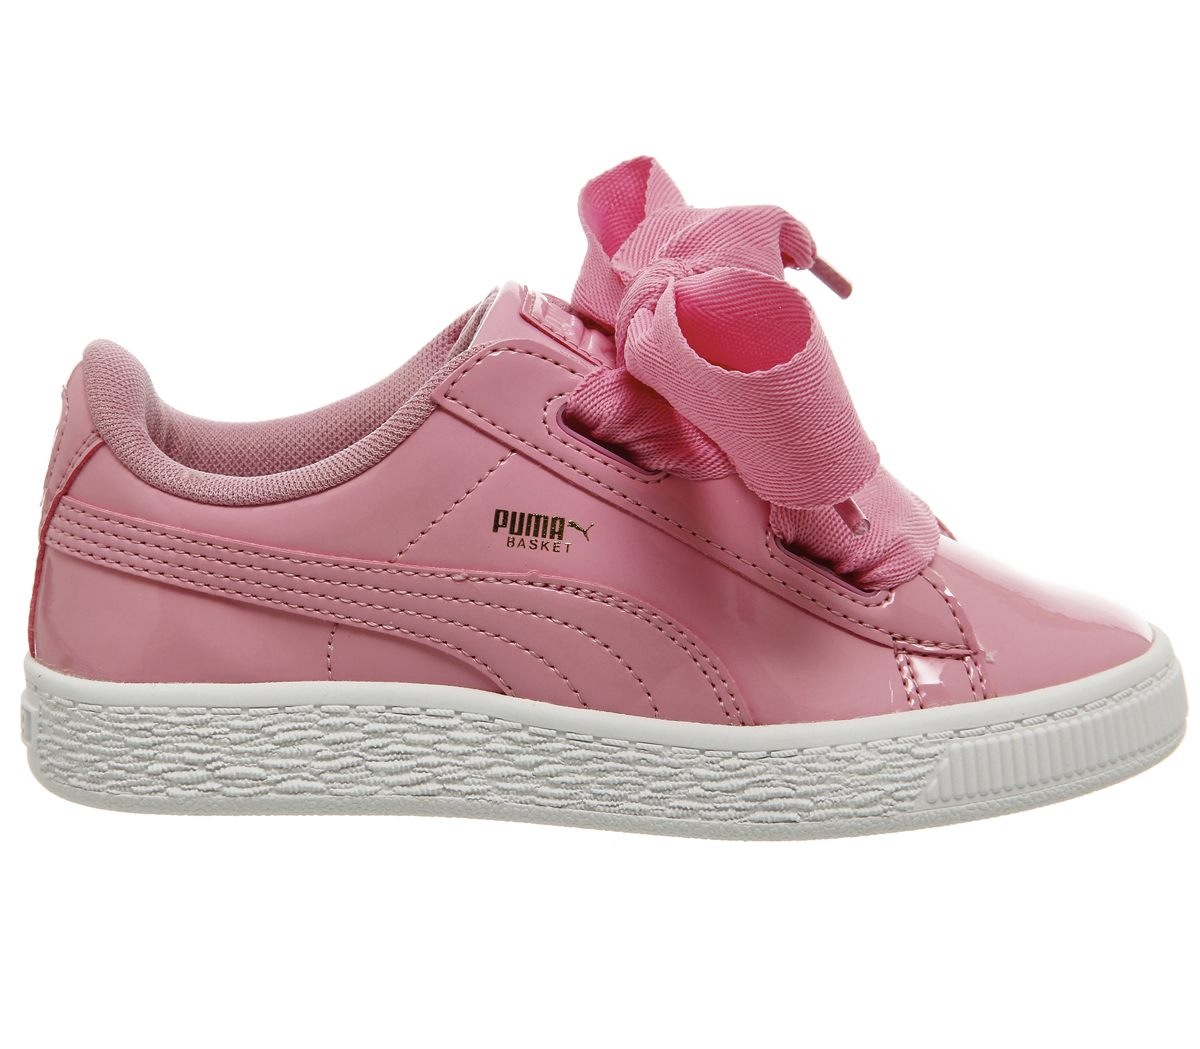 check out 05f63 4336d Details about Kids Puma Basket Heart Ps Prism Pink Patent Kids